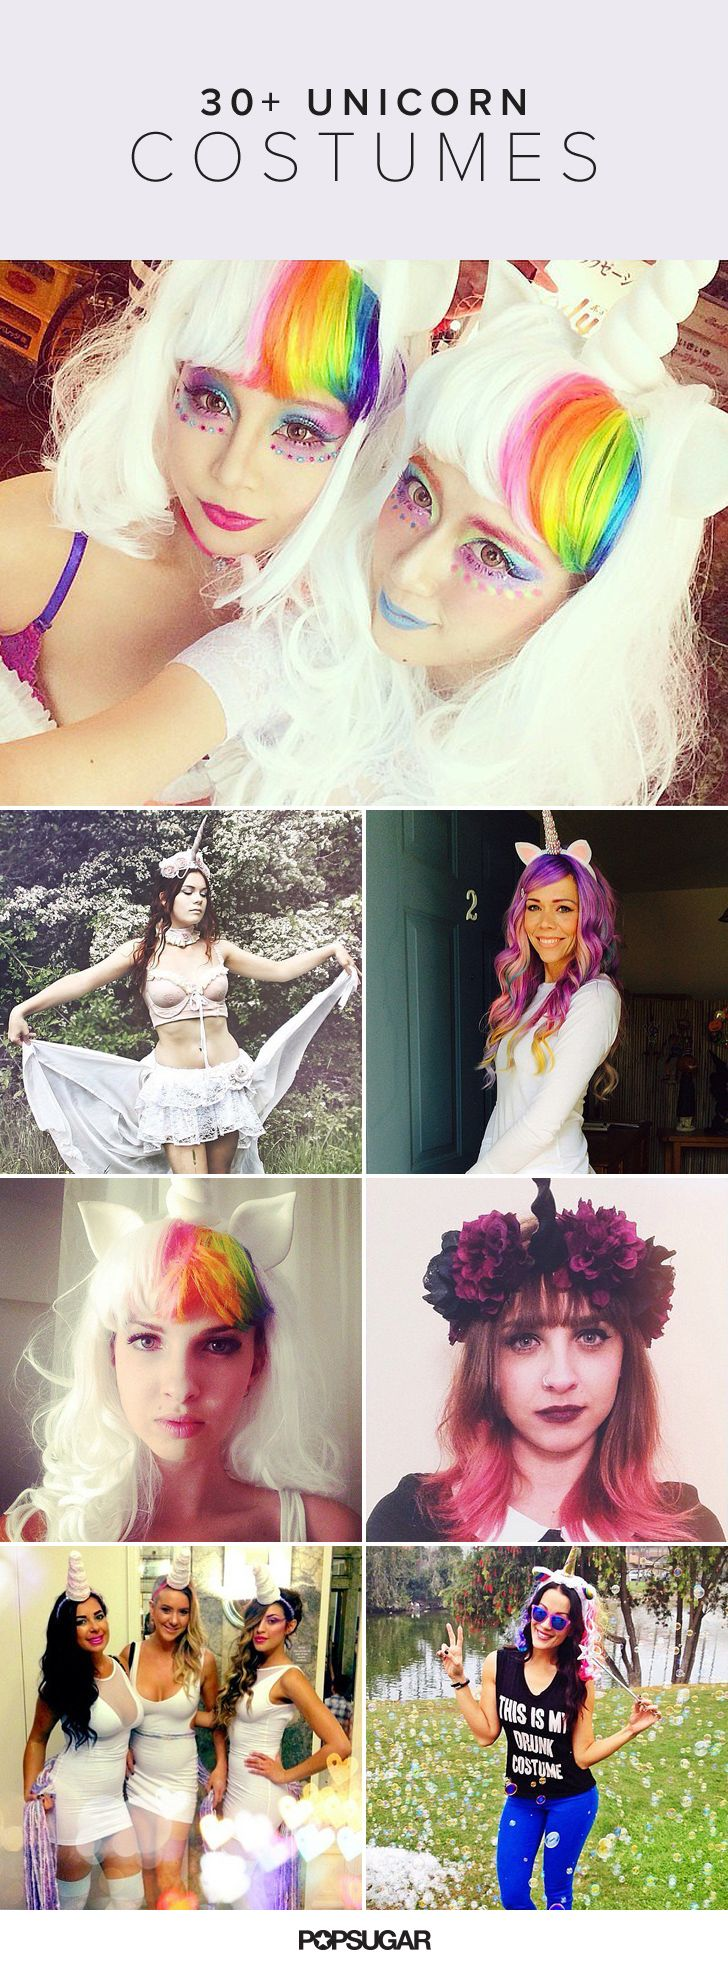 Unicorn Obsessed? These 36 Magical Costumes Are Marvelous